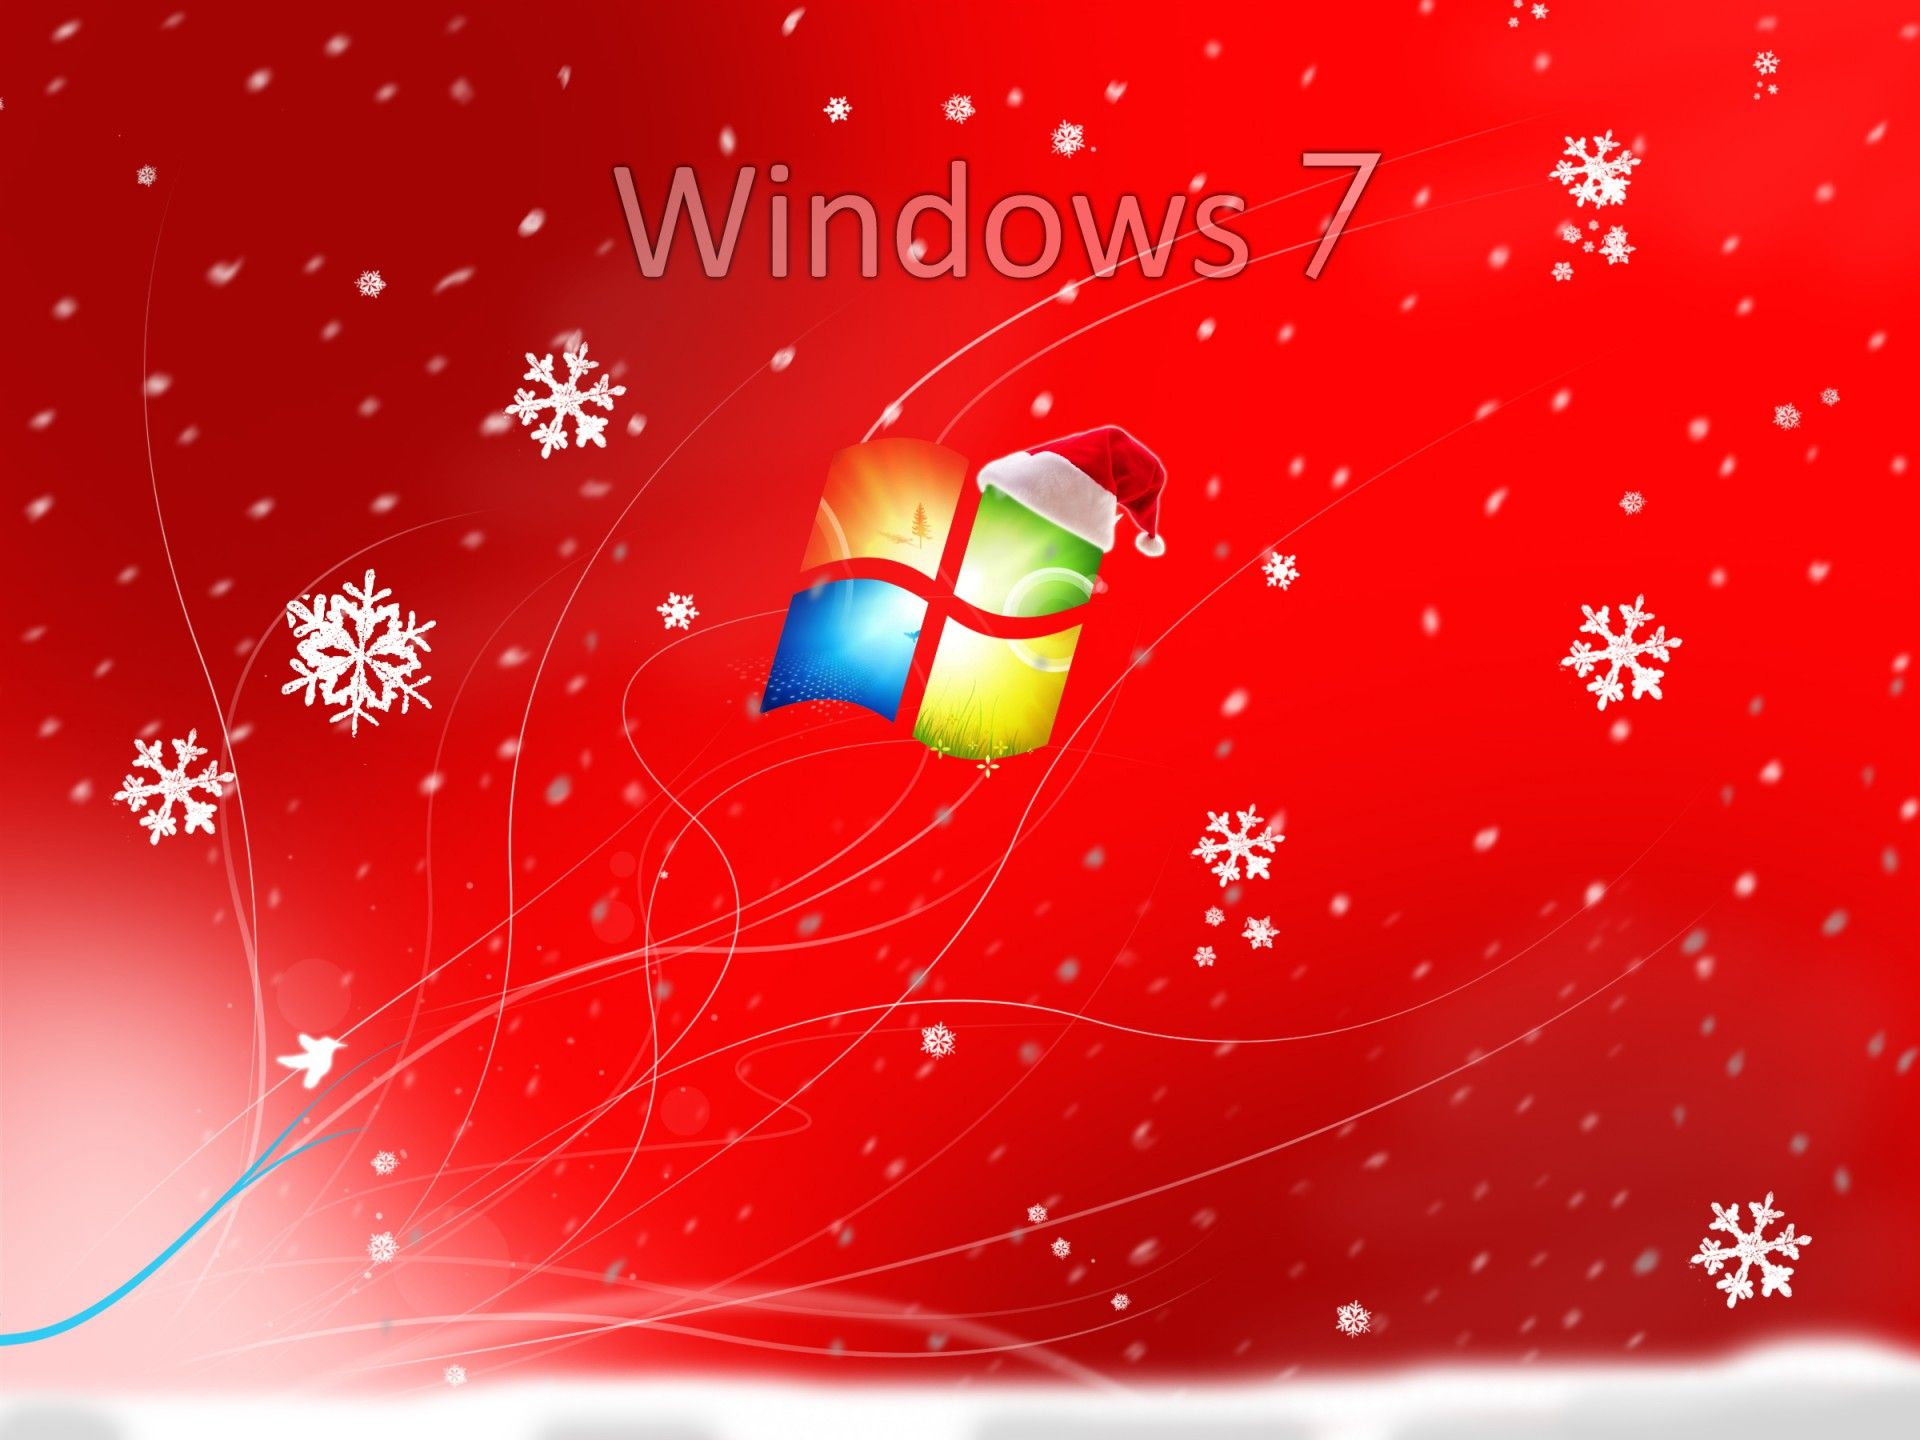 christmas wallpapers for windows 7 hd wallpaper | lugares para